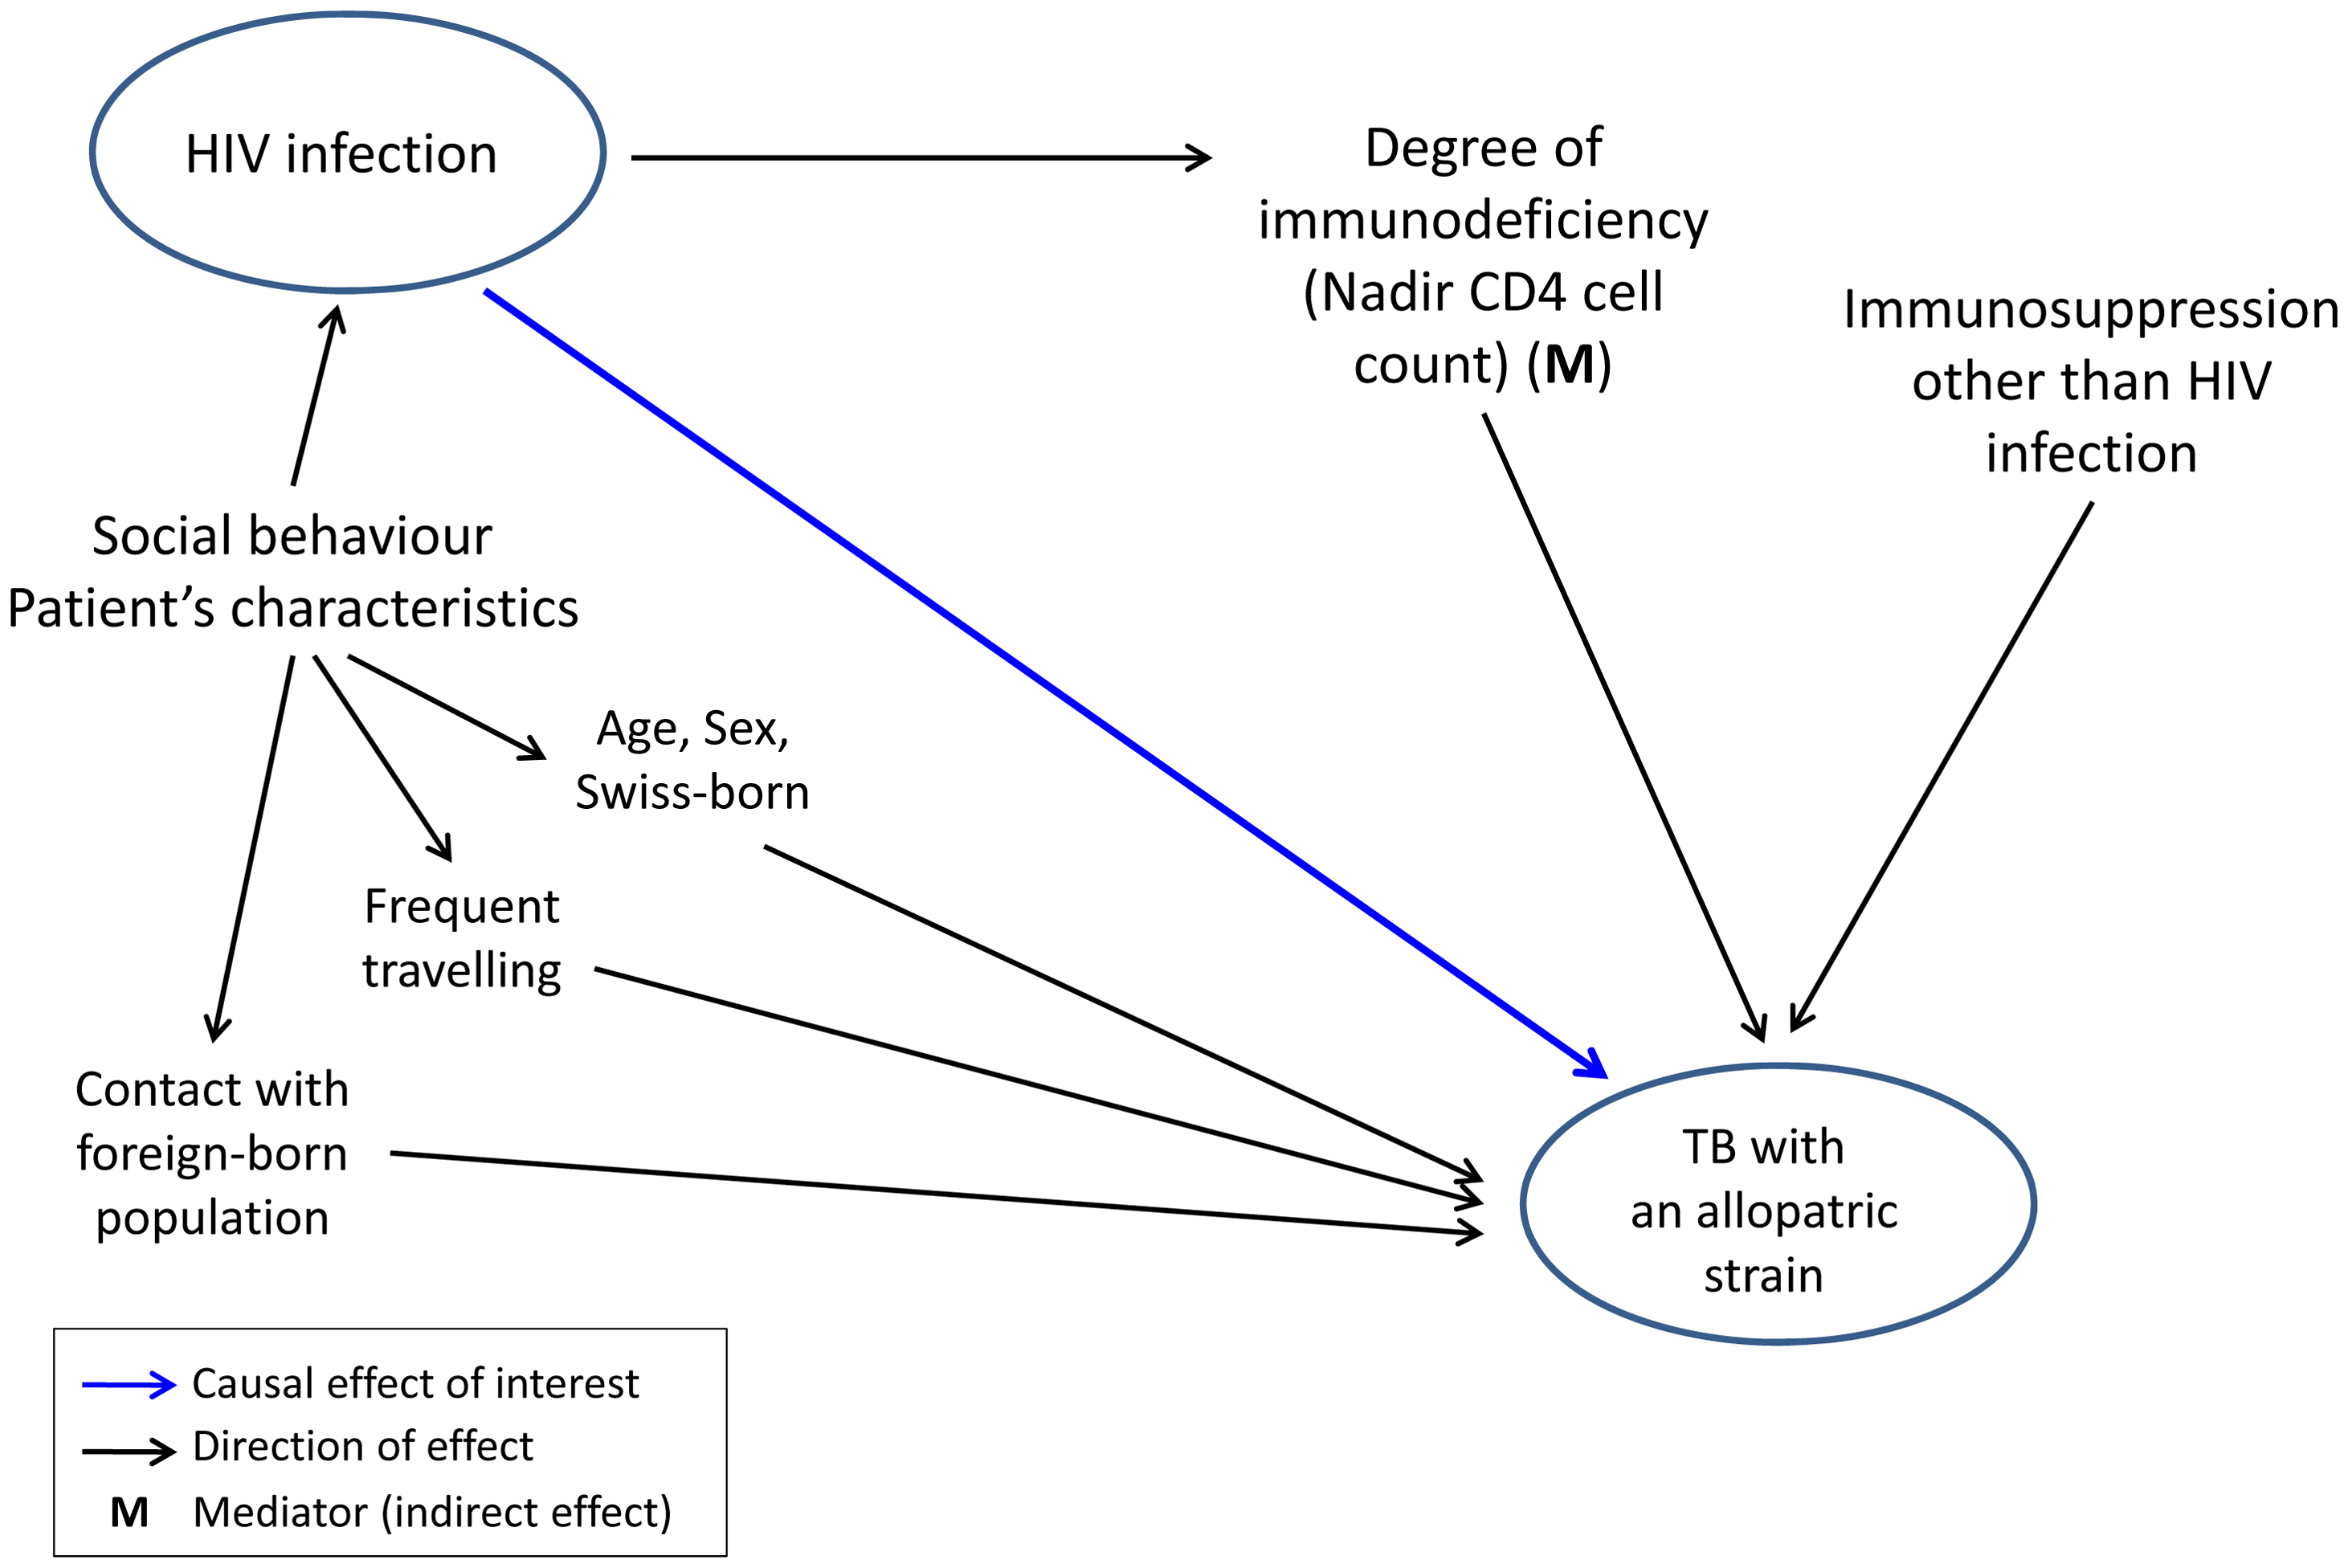 Graphical model showing direct and indirect potential effects of HIV infection on tuberculosis (TB) caused by an allopatric <i>Mycobacterium tuberculosis</i> strain, in the context of other potential factors influencing this association.